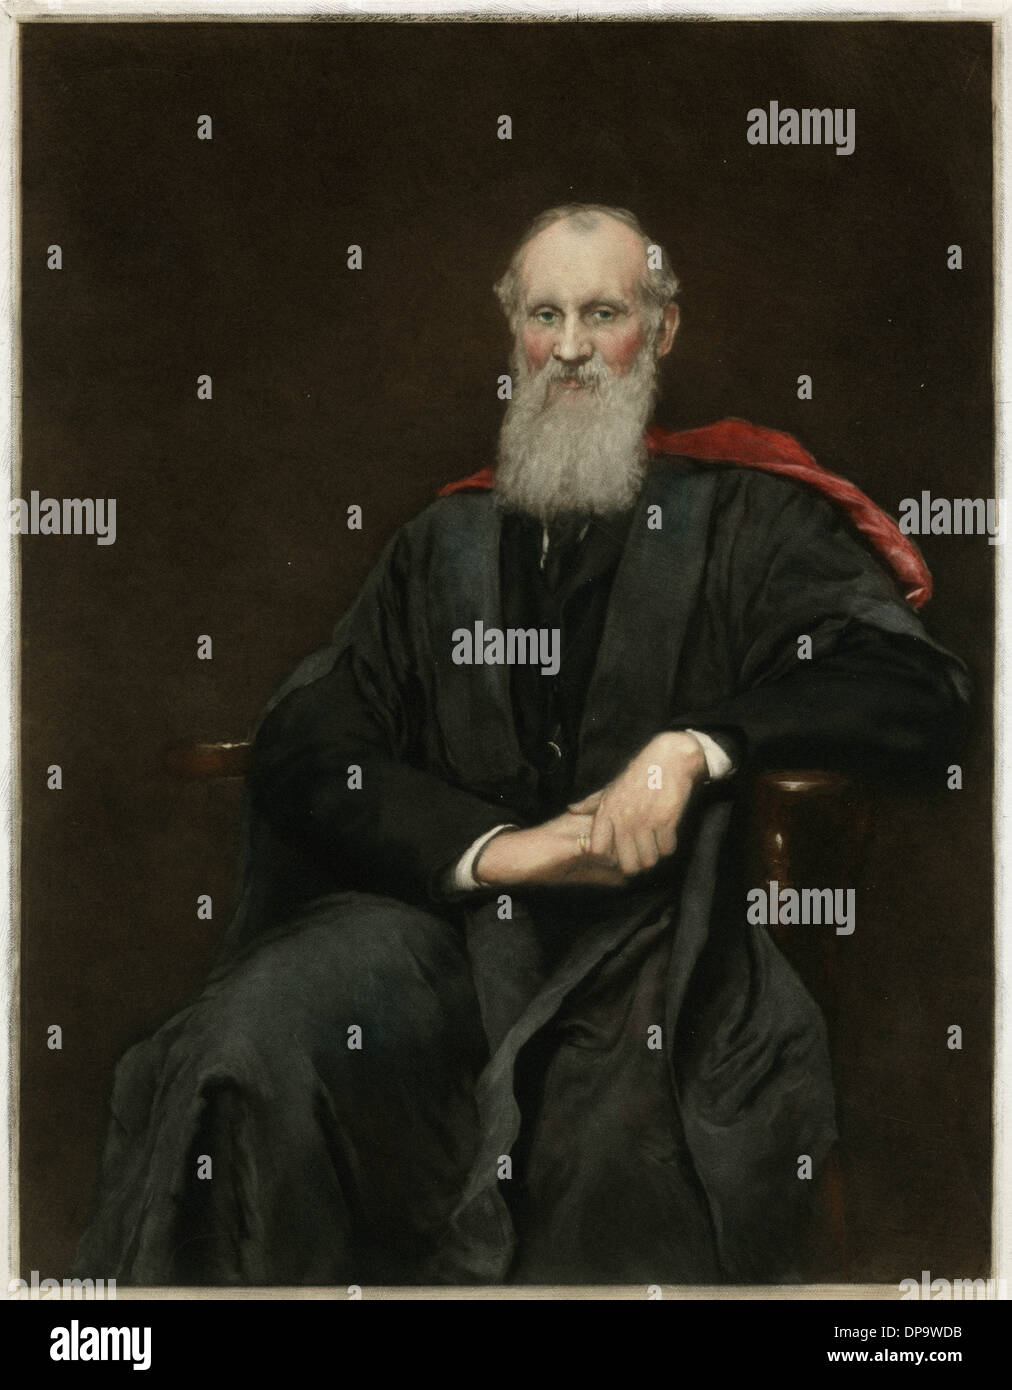 LORD KELVIN - Stock Image